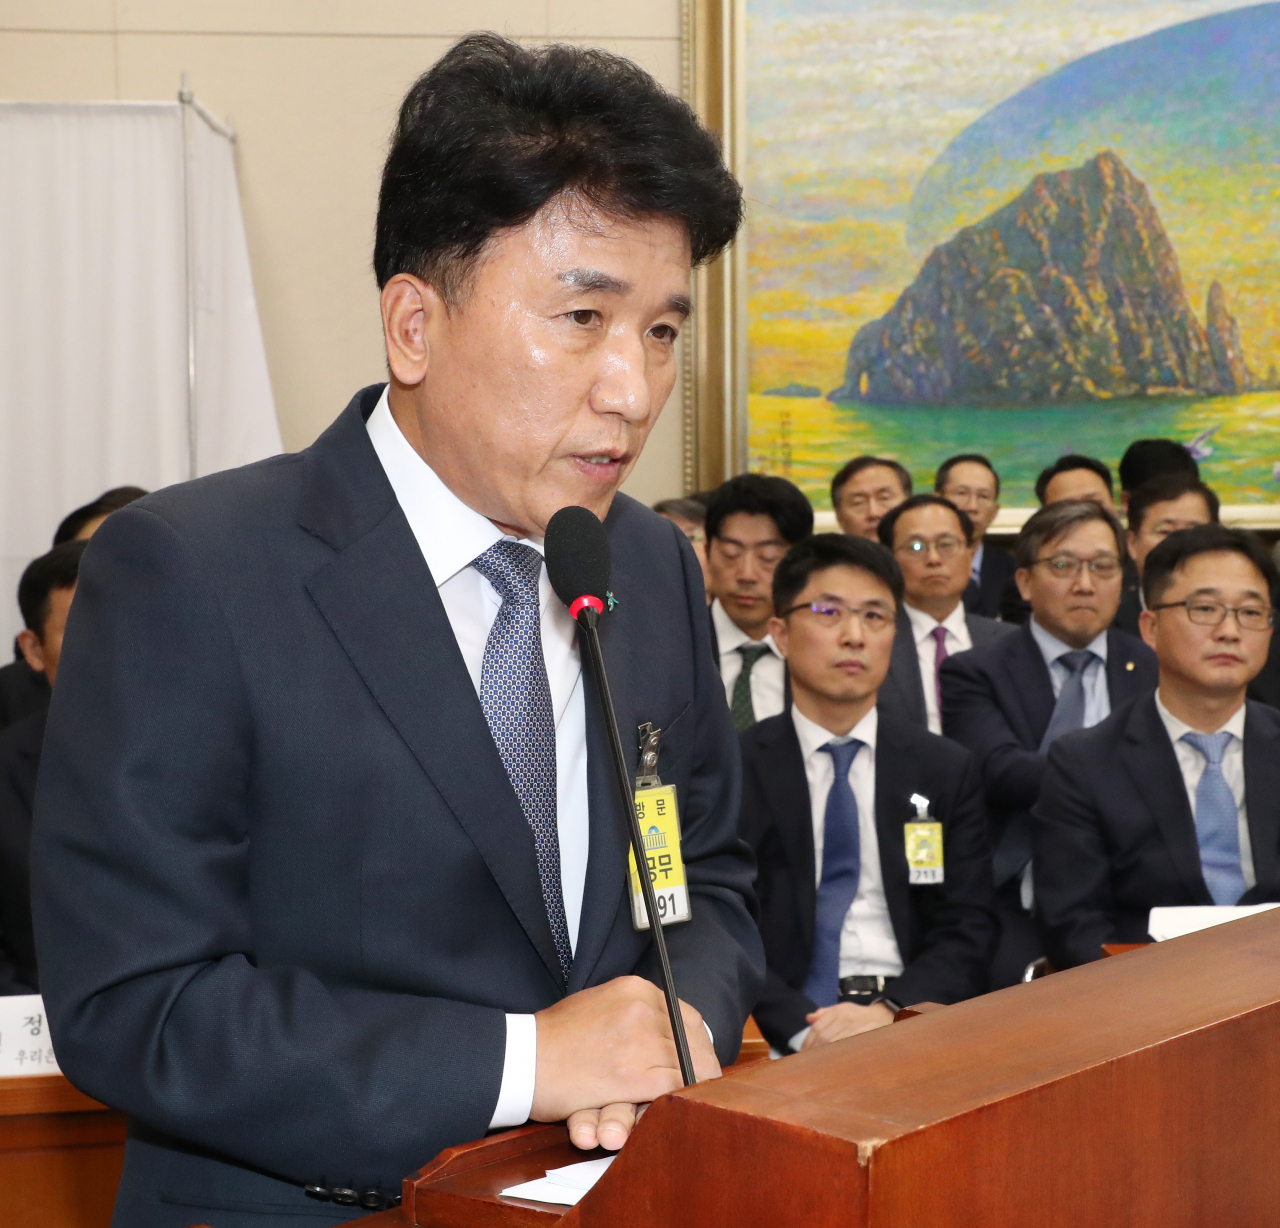 KEB Hana Bank CEO Ham Young-joo speaks in a parliamentary audit session on Oct. 21. (Yonhap)